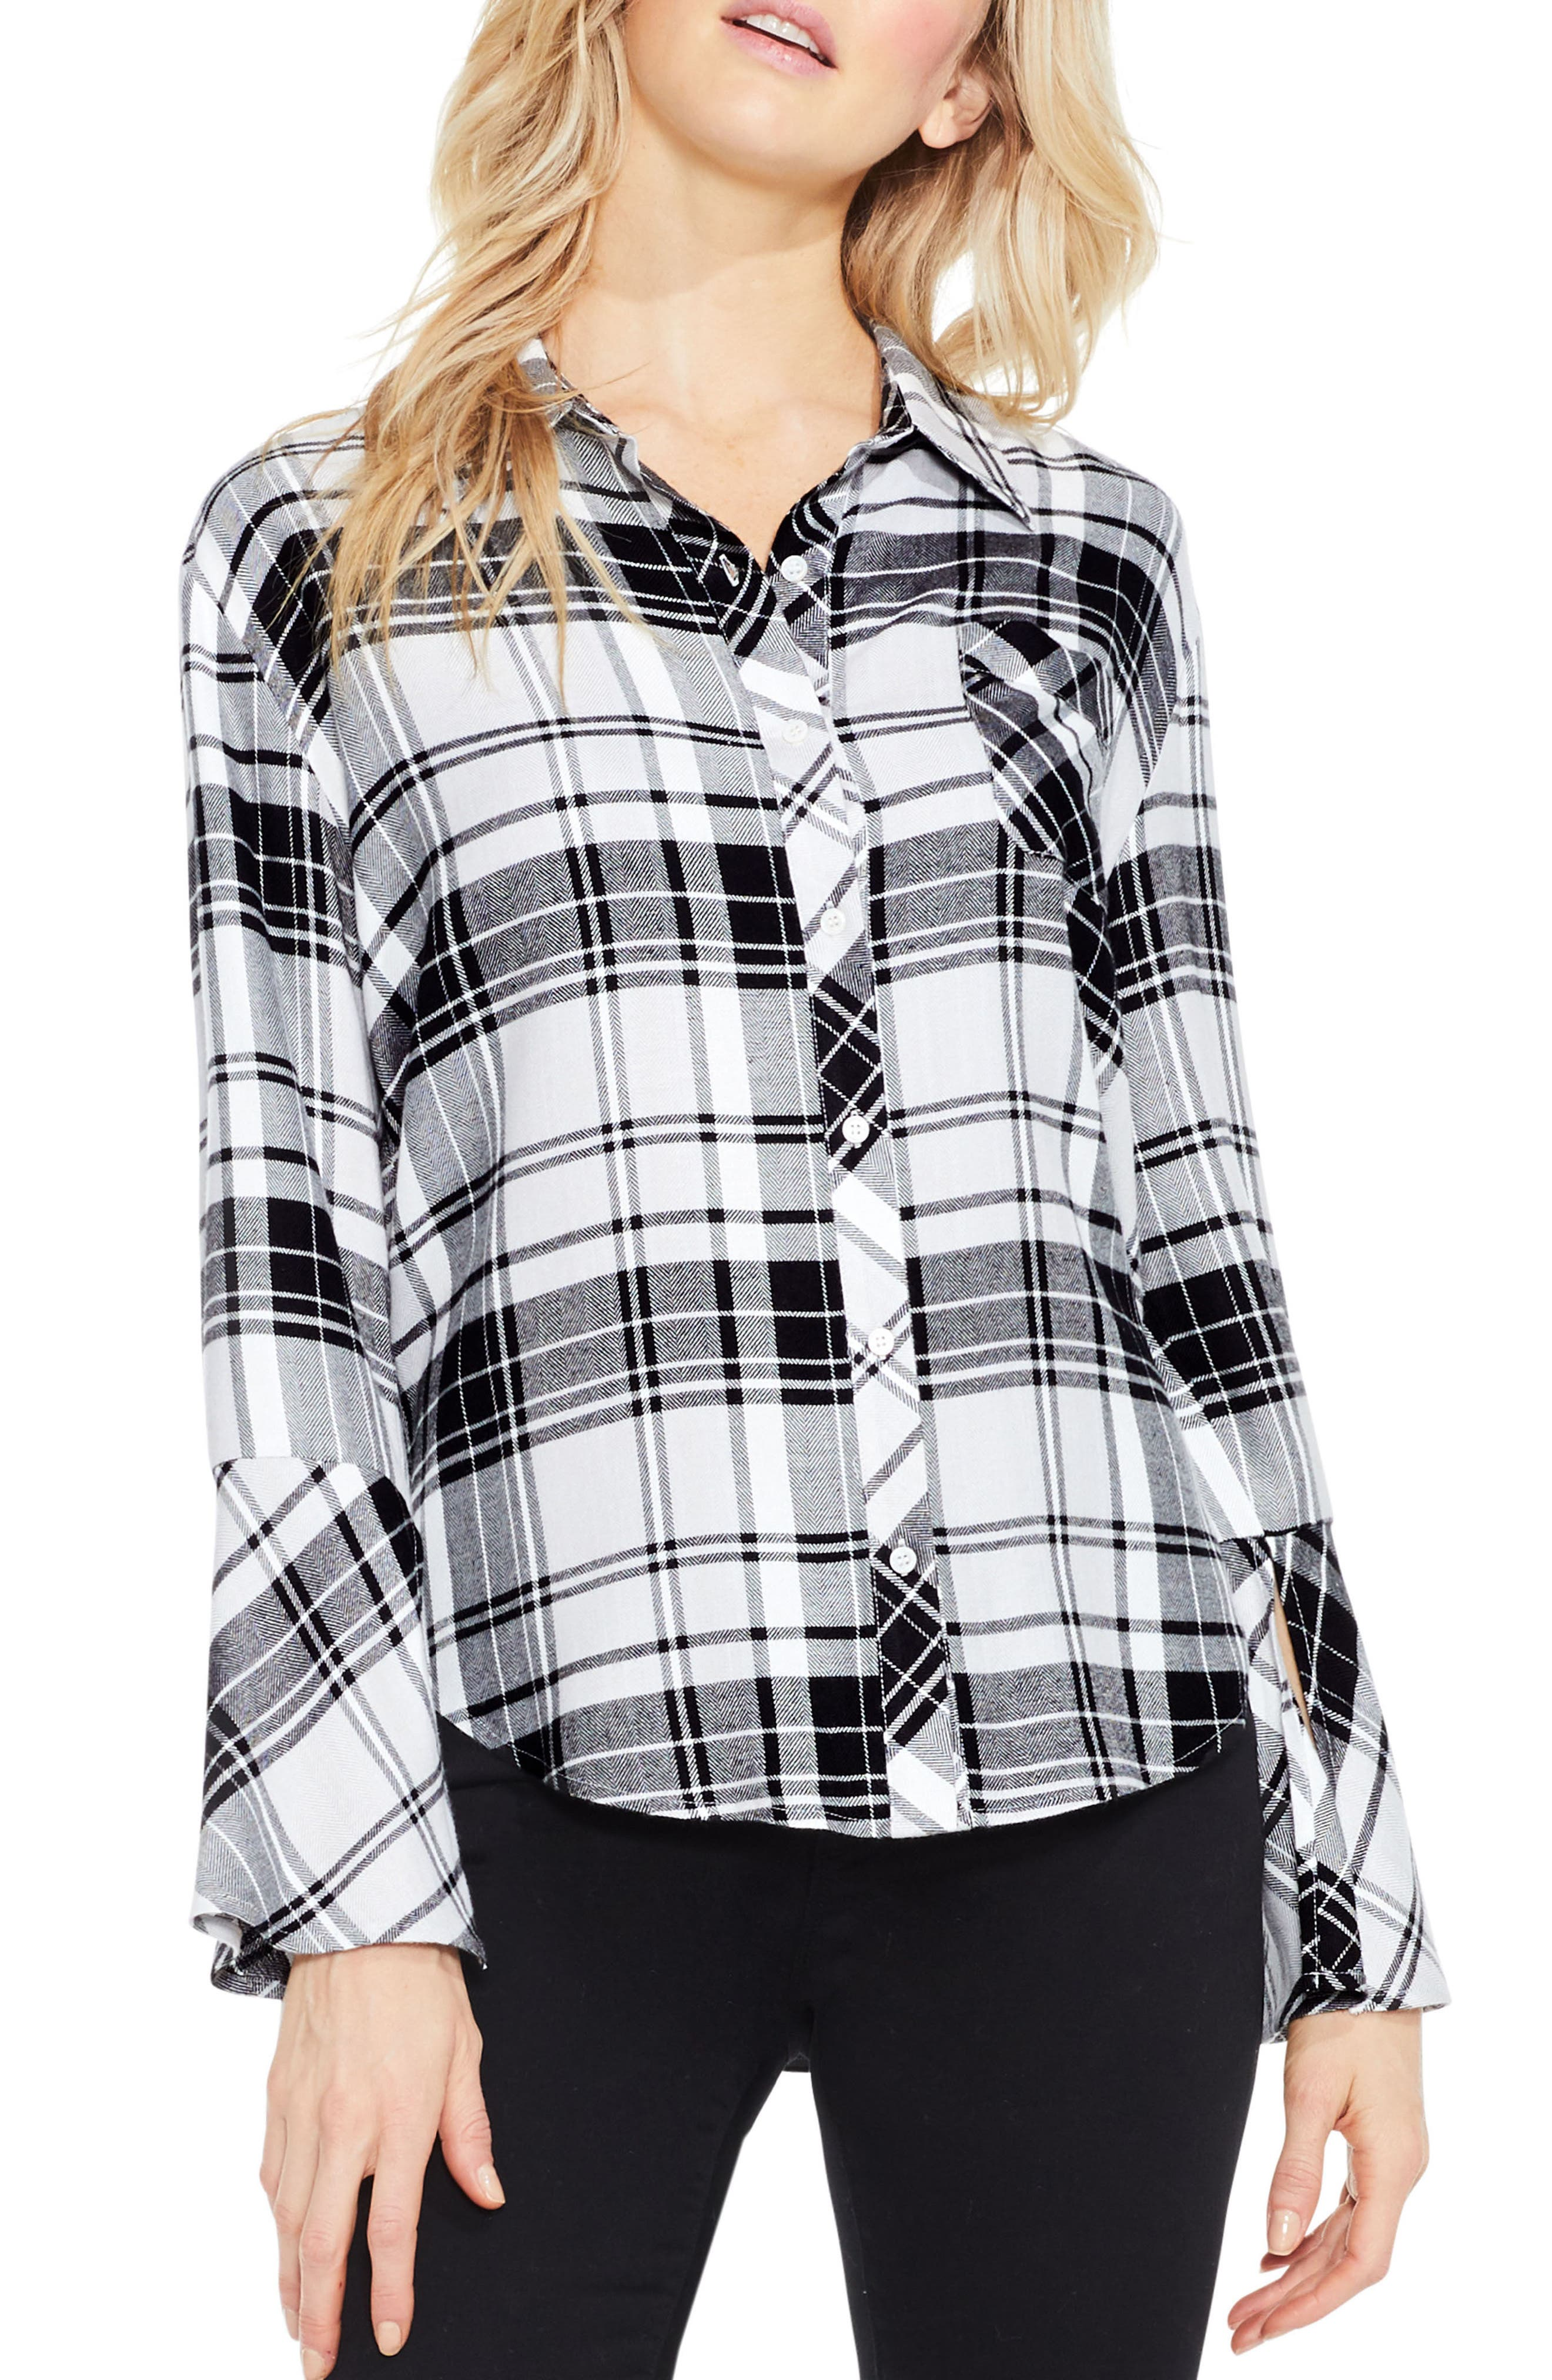 Alternate Image 1 Selected - Two by Vince Camuto Plaid Bell Sleeve Shirt